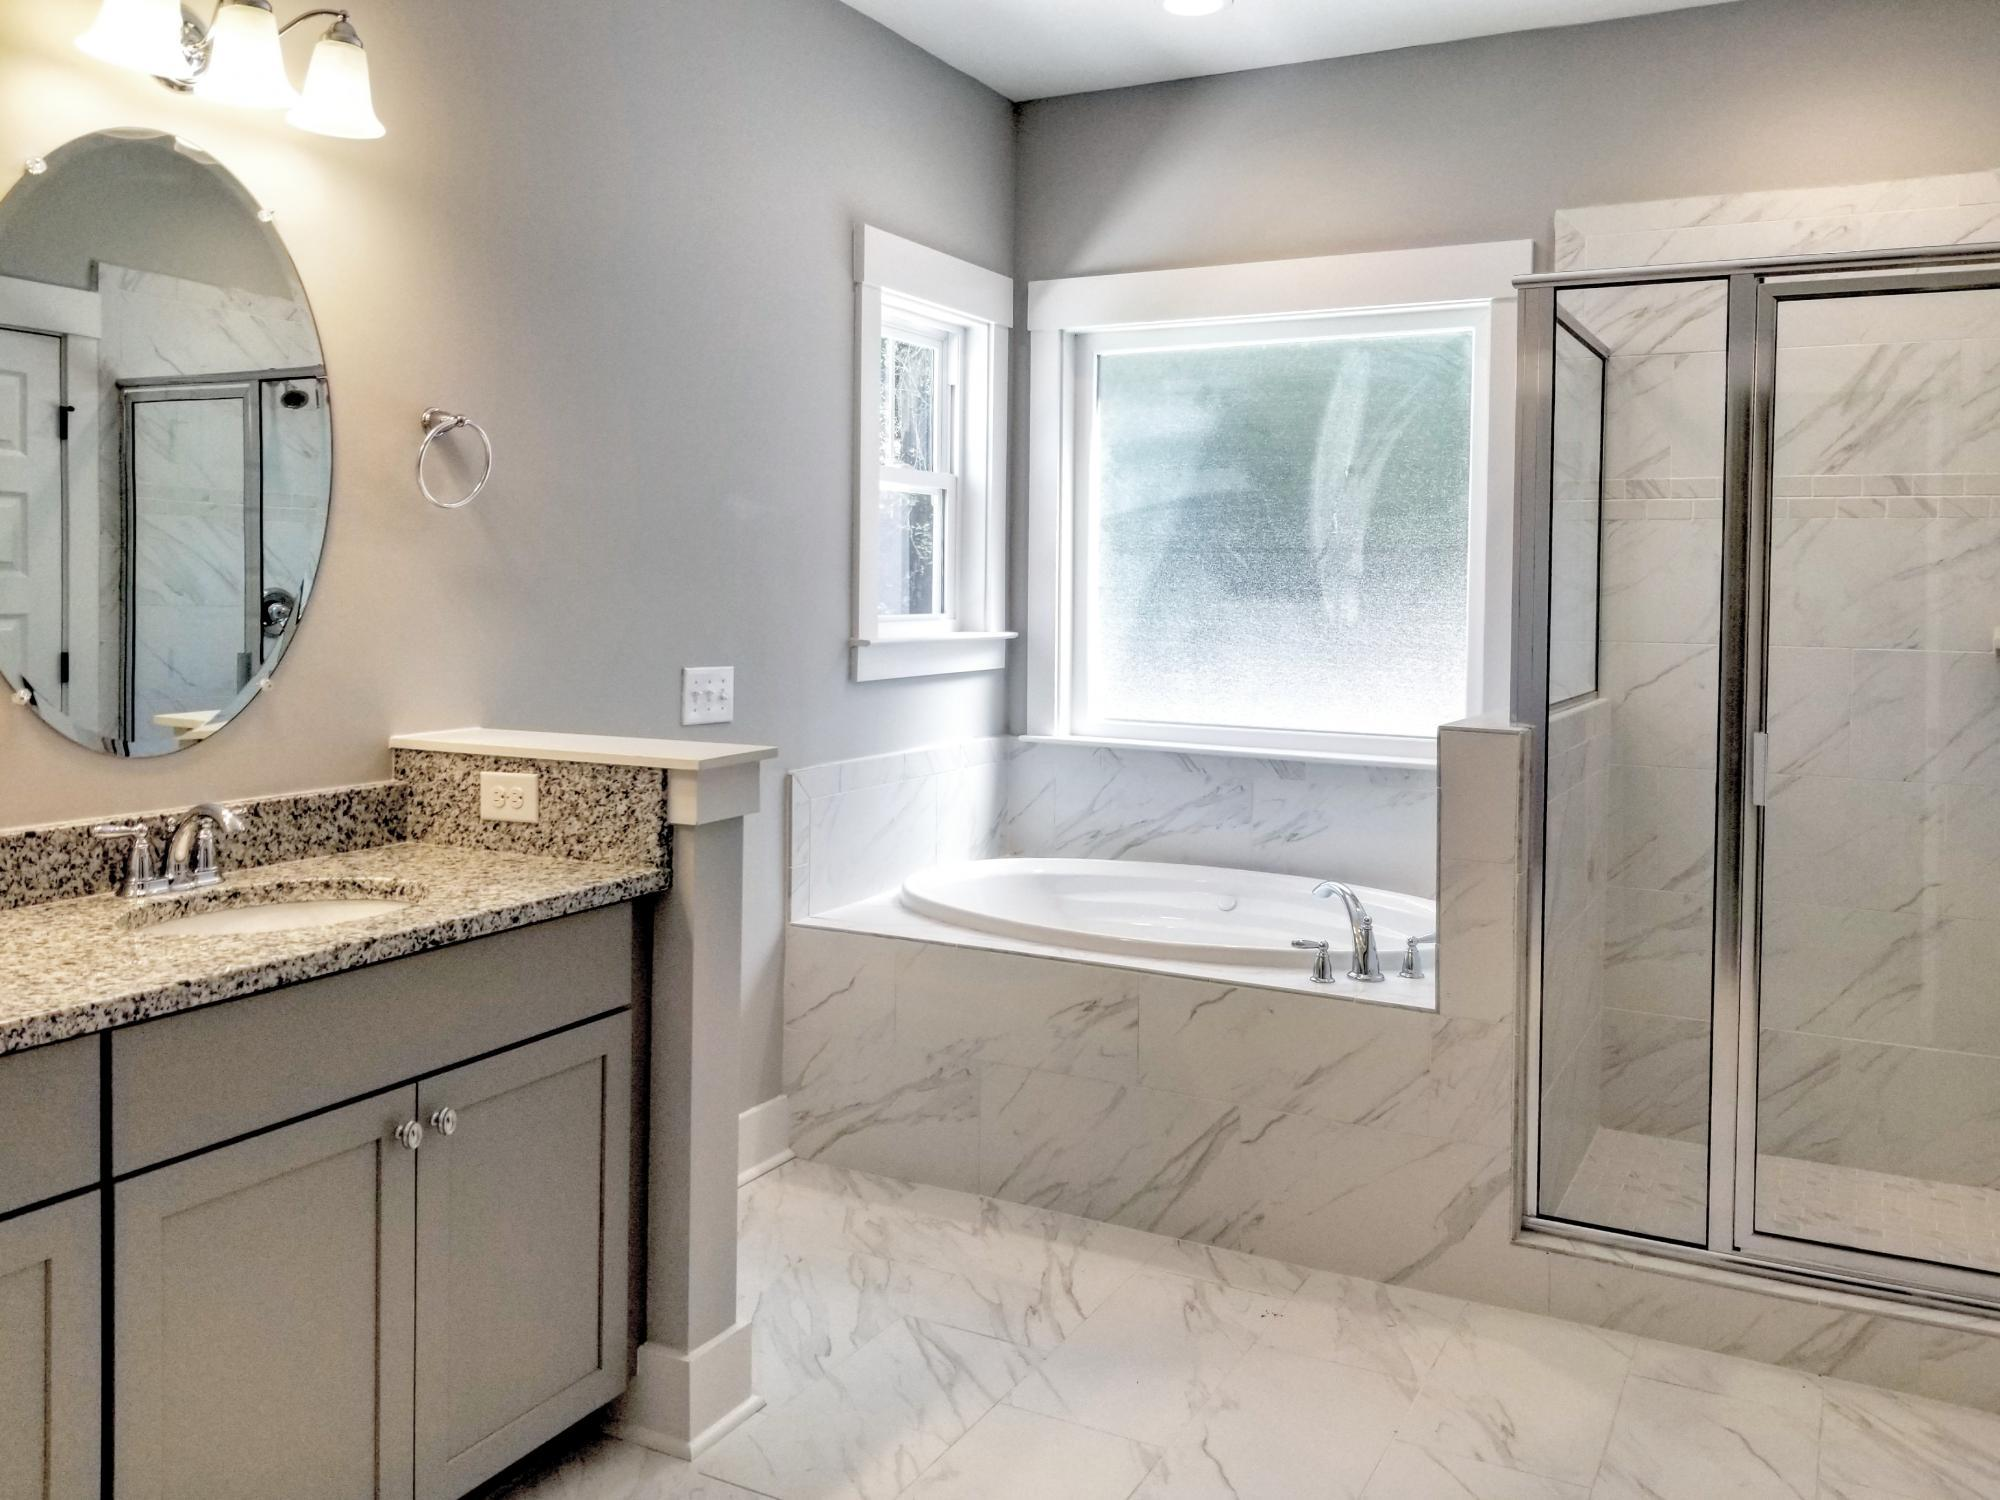 Bathroom featured in the Edisto By Konter Quality Homes in Savannah, GA